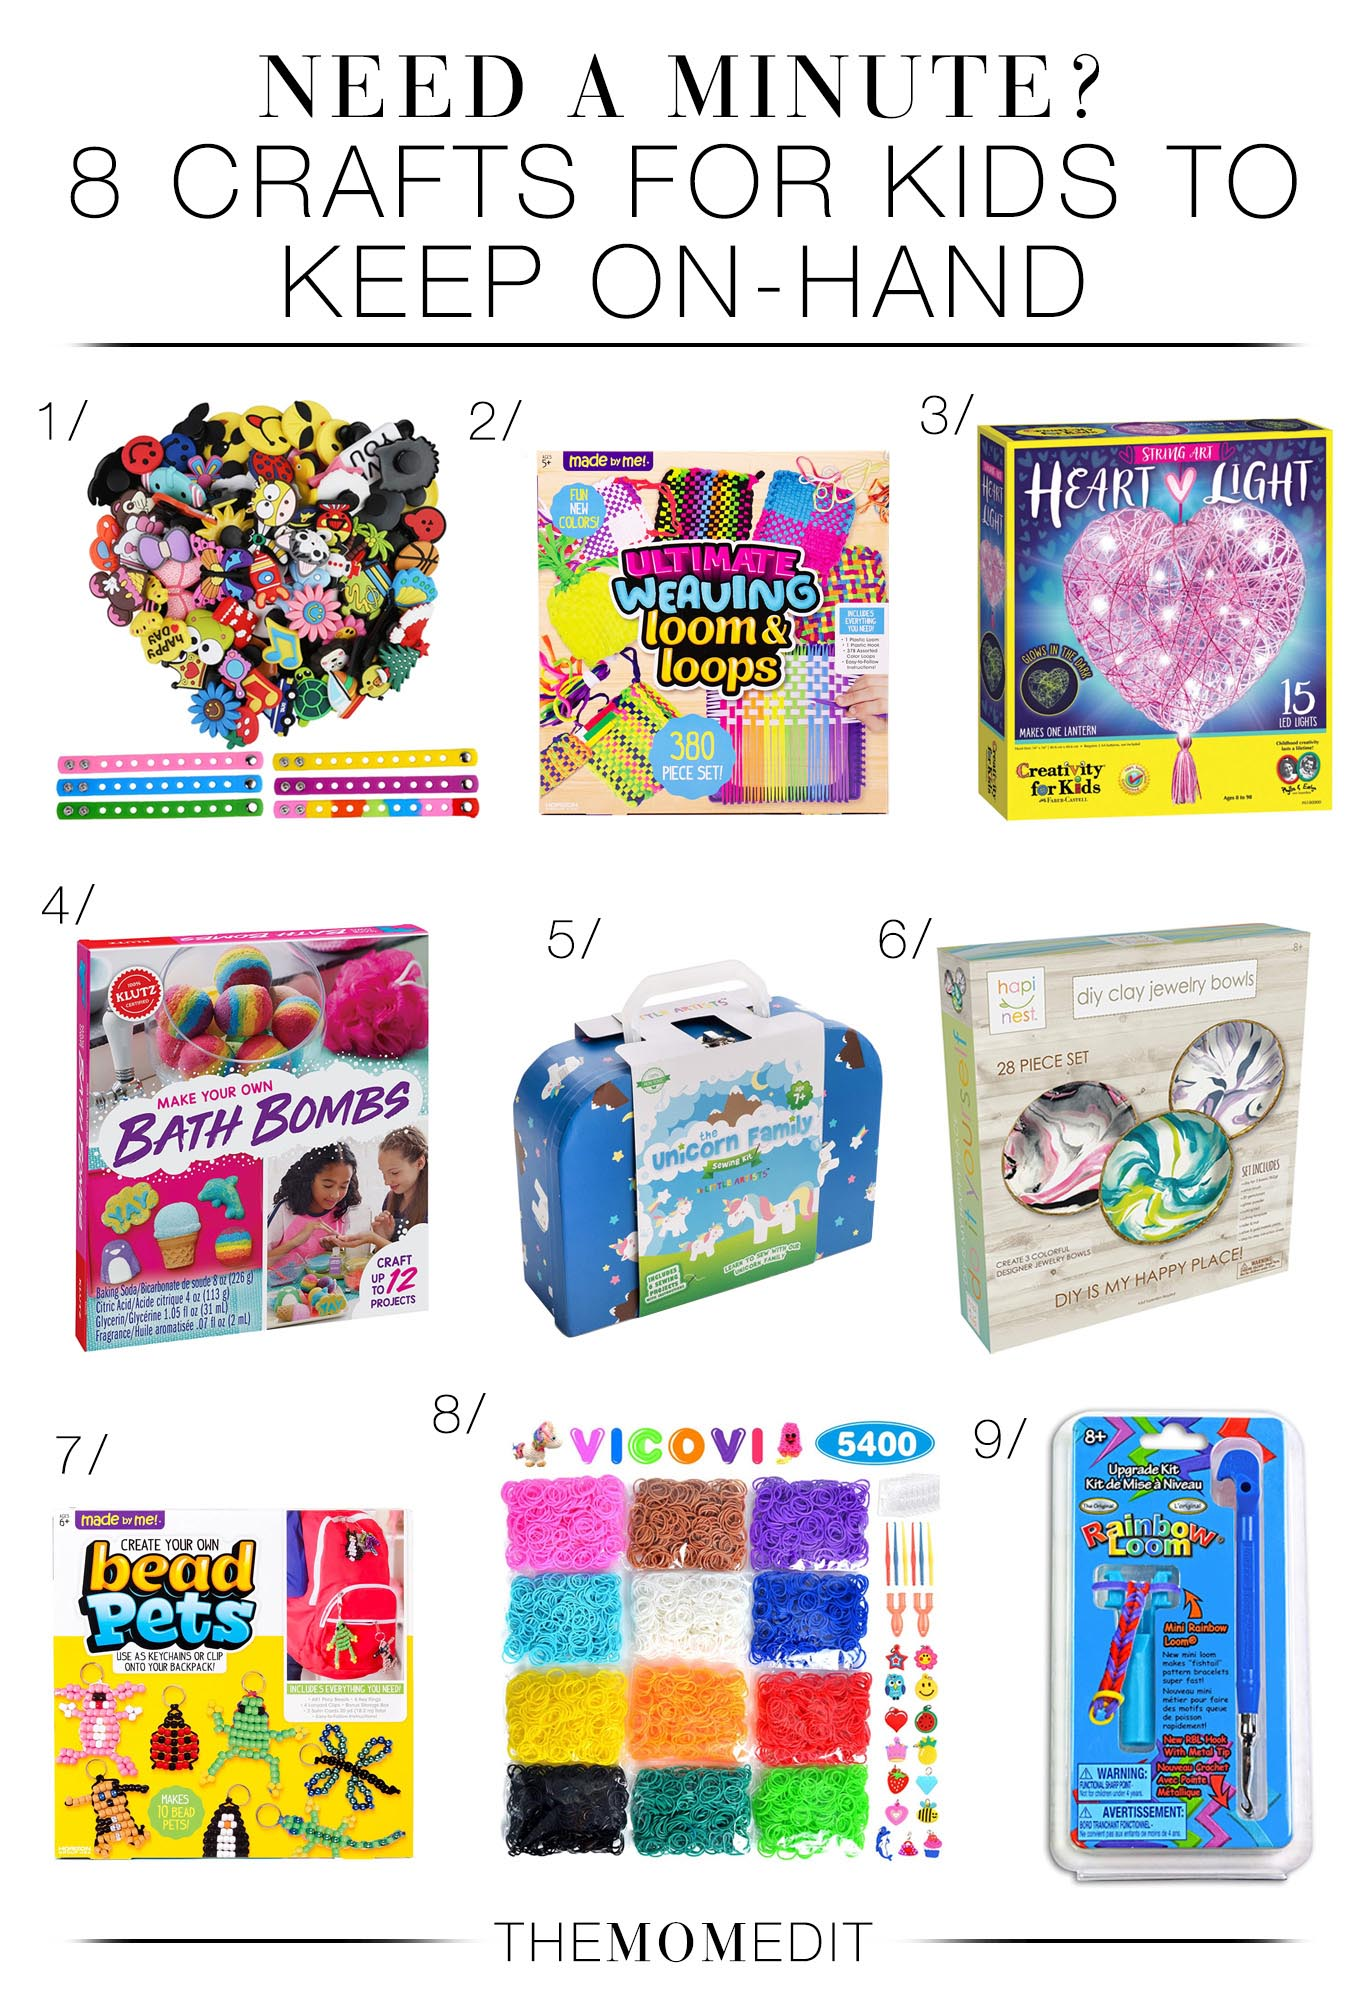 Fun quarantine activities for kids? On it! We're rounding up 8 easy craft kits for kids at home -- think rainbows, unicorns, beads & bracelets.